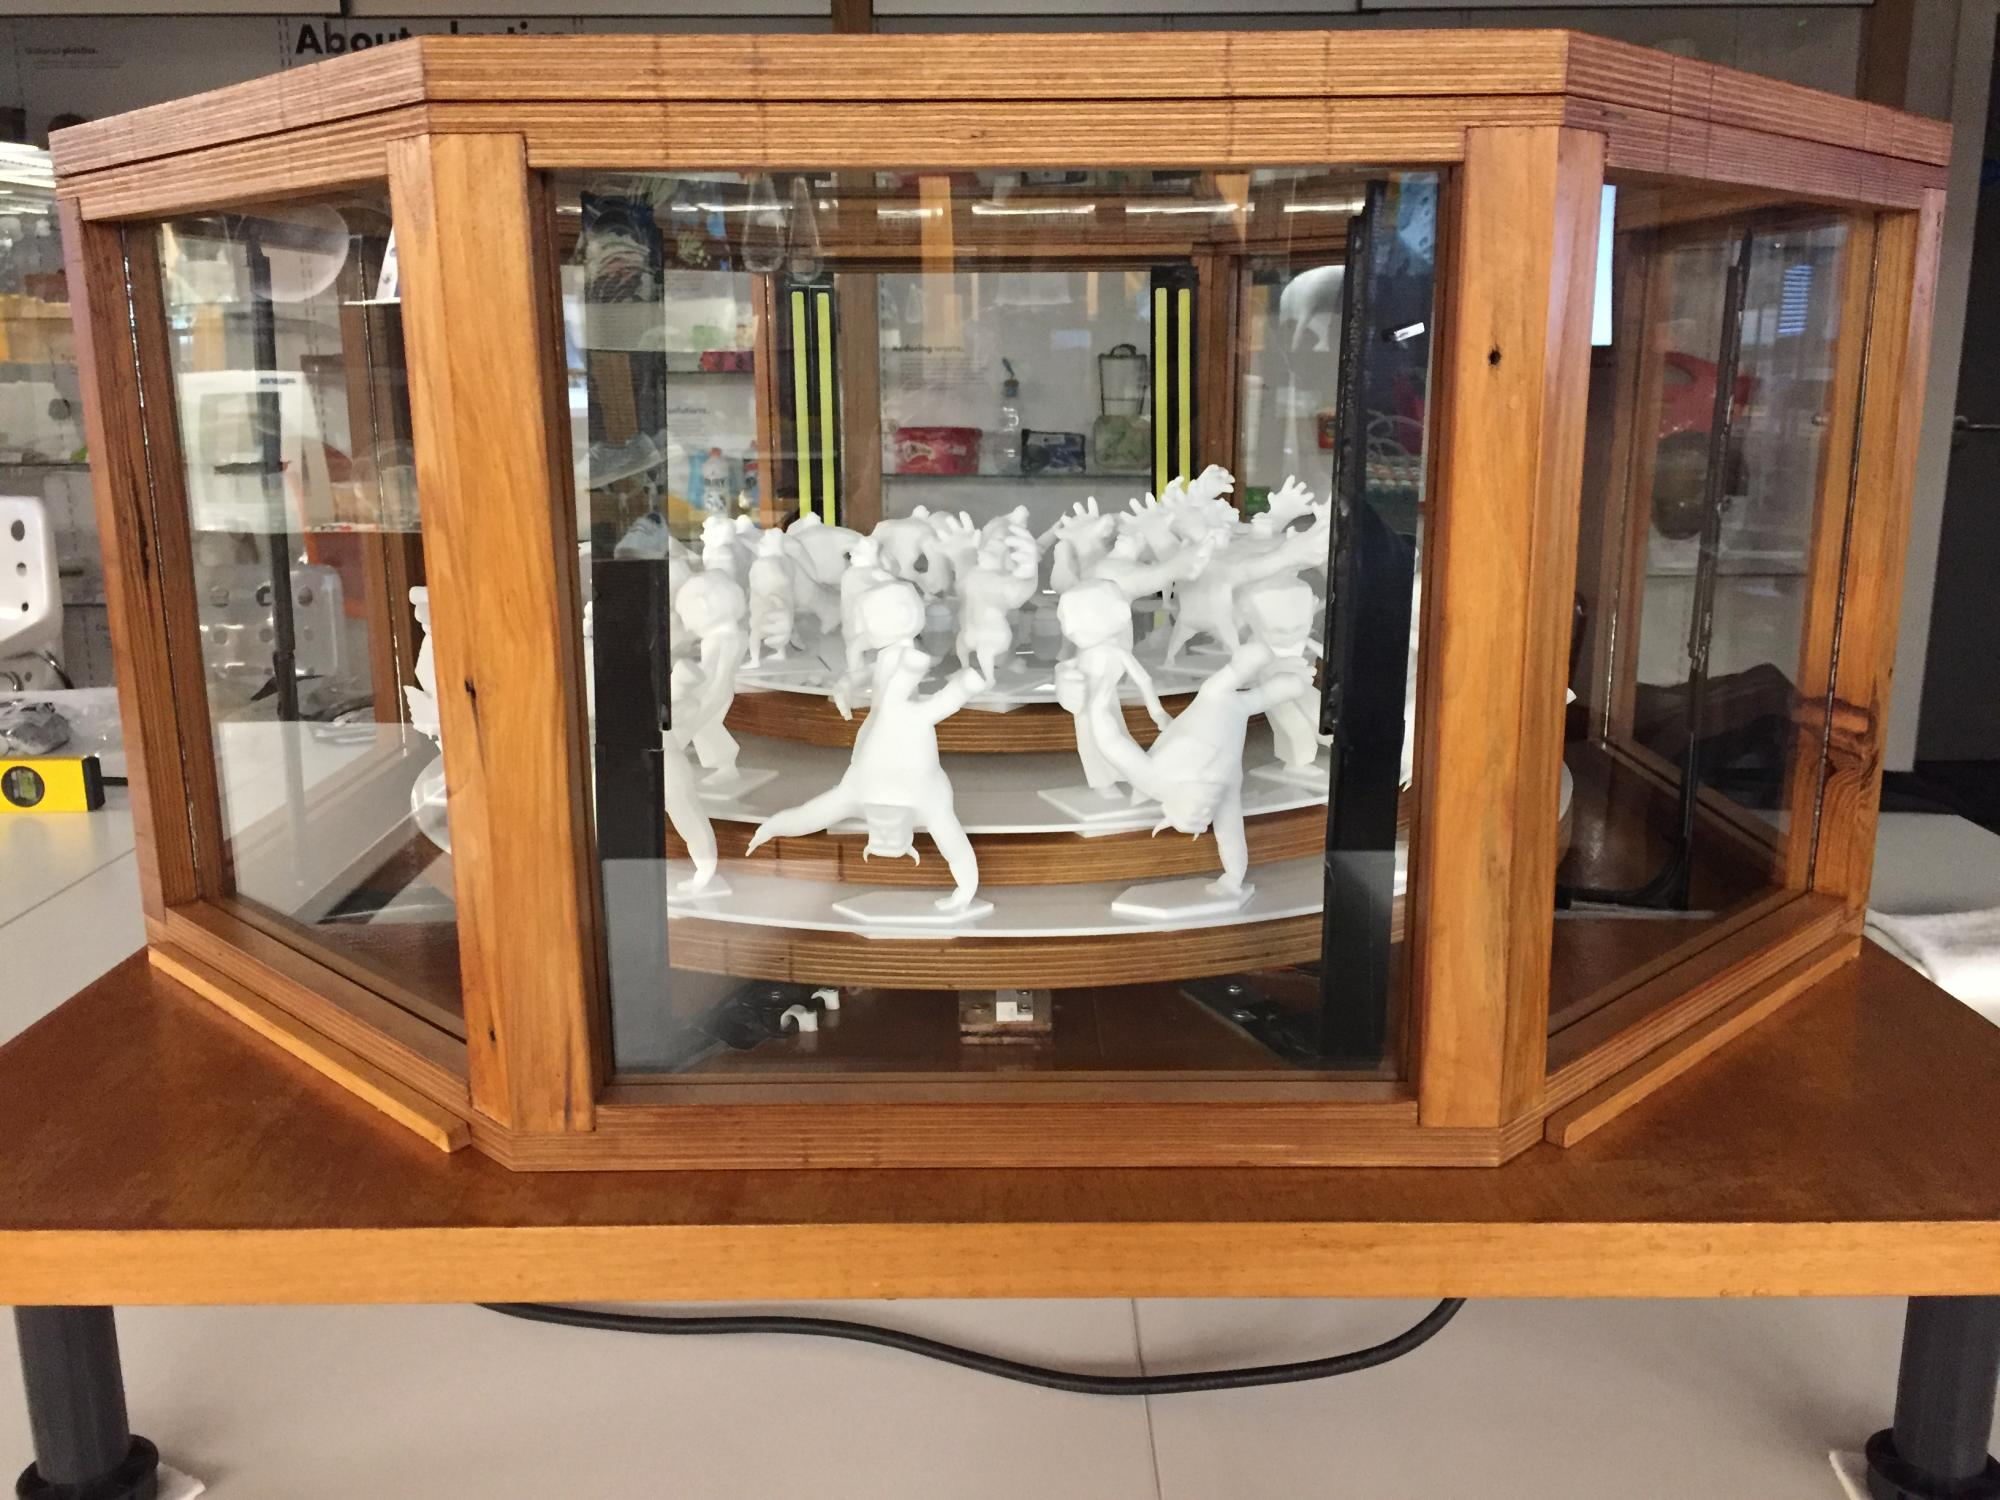 Zoetrope in display case